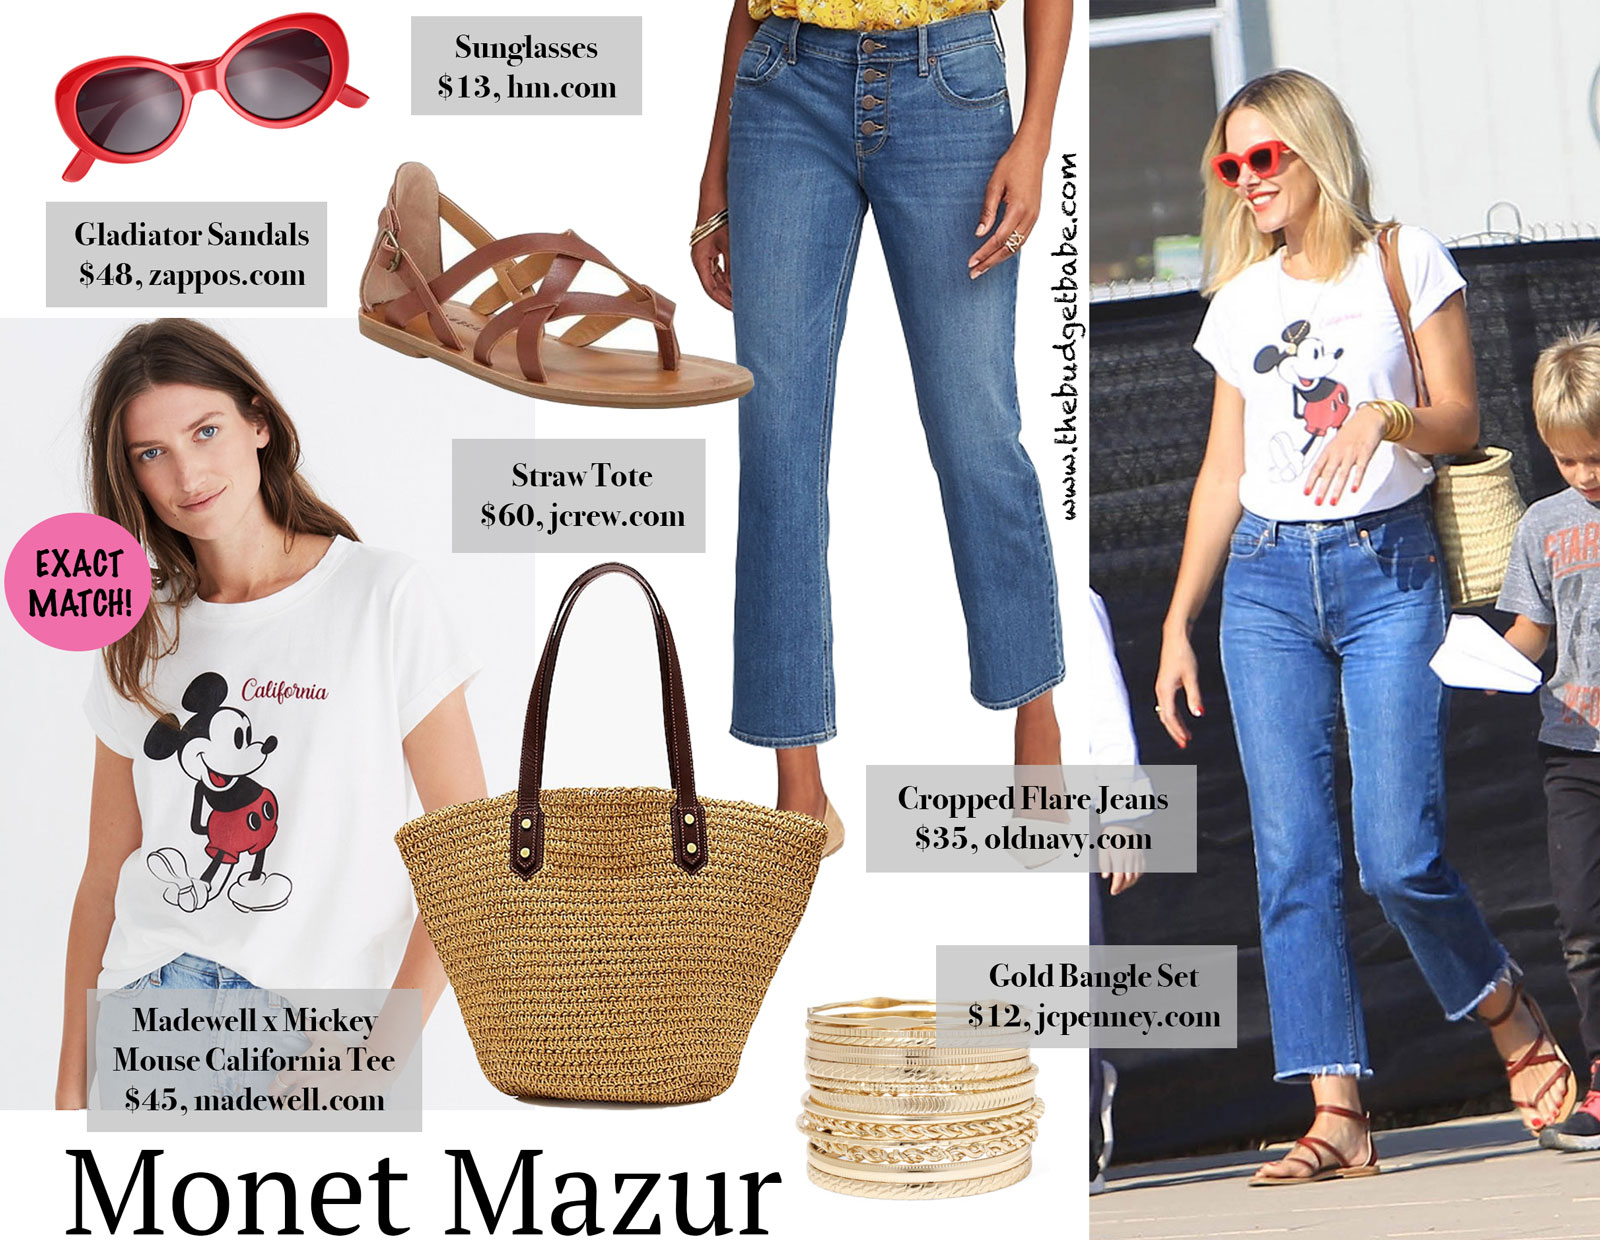 Money Mazur Madewell Mickey Mouse Tee Look for Less